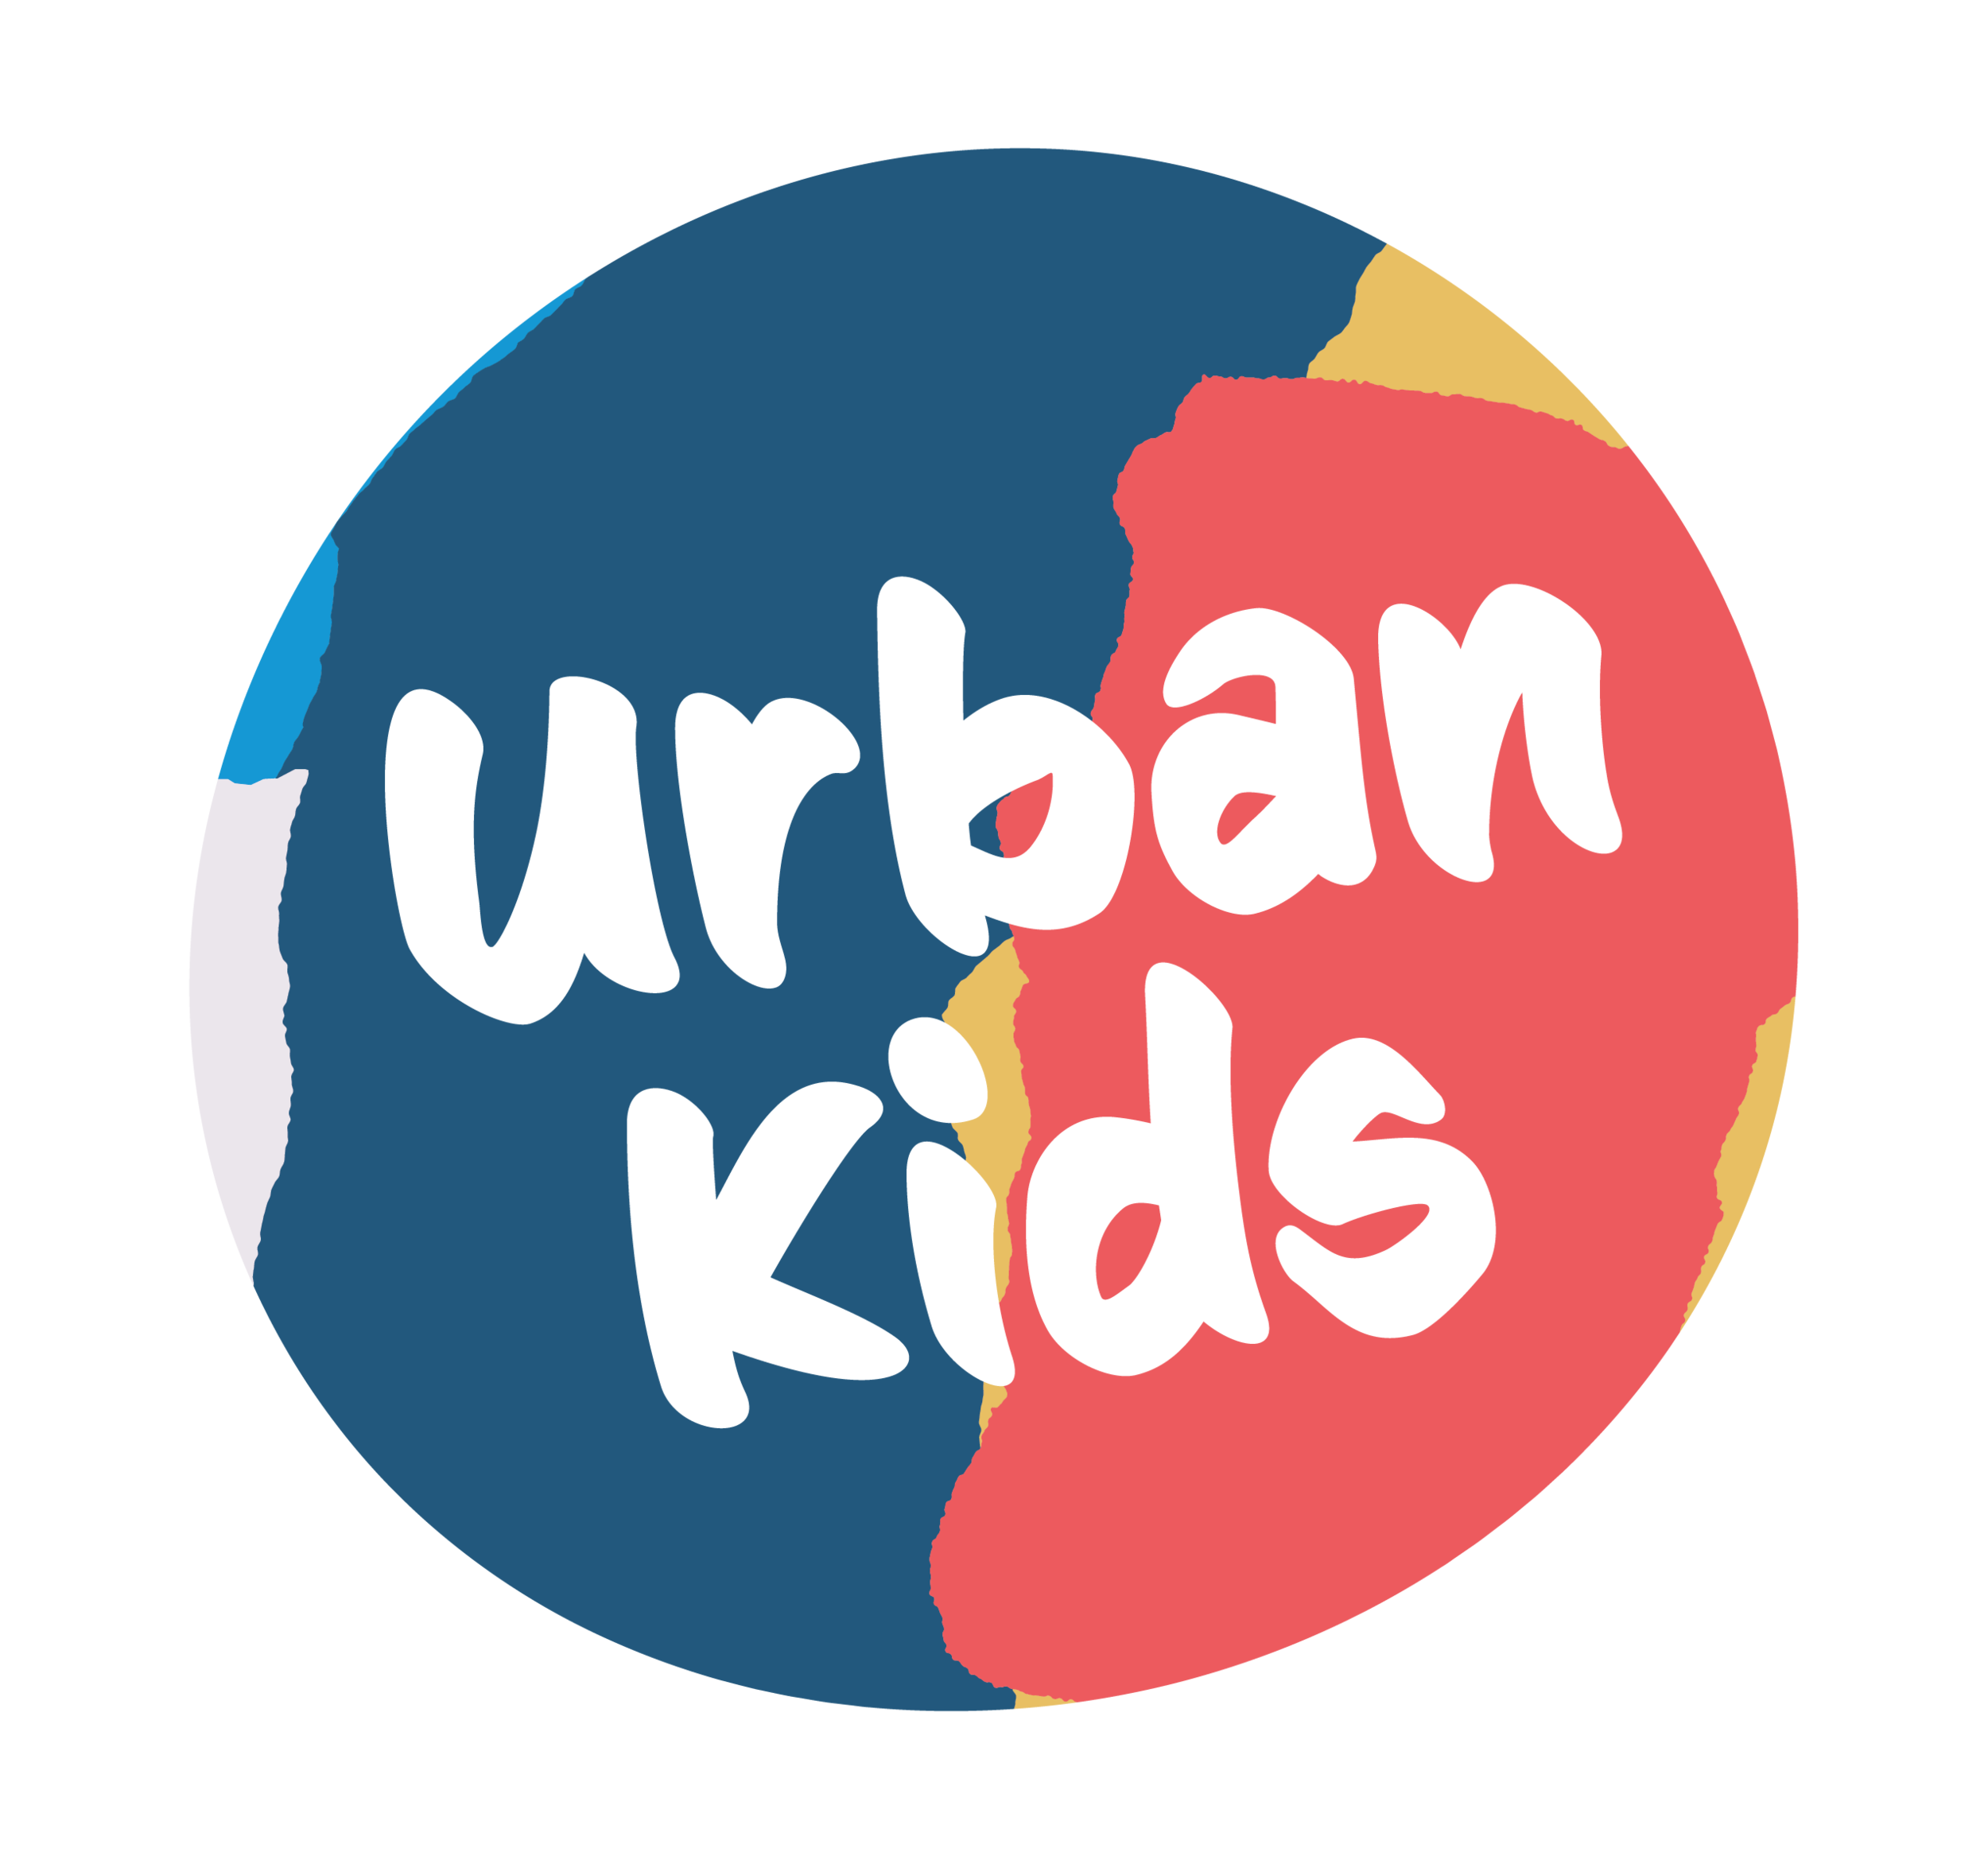 urban-kids-colourXXL.png